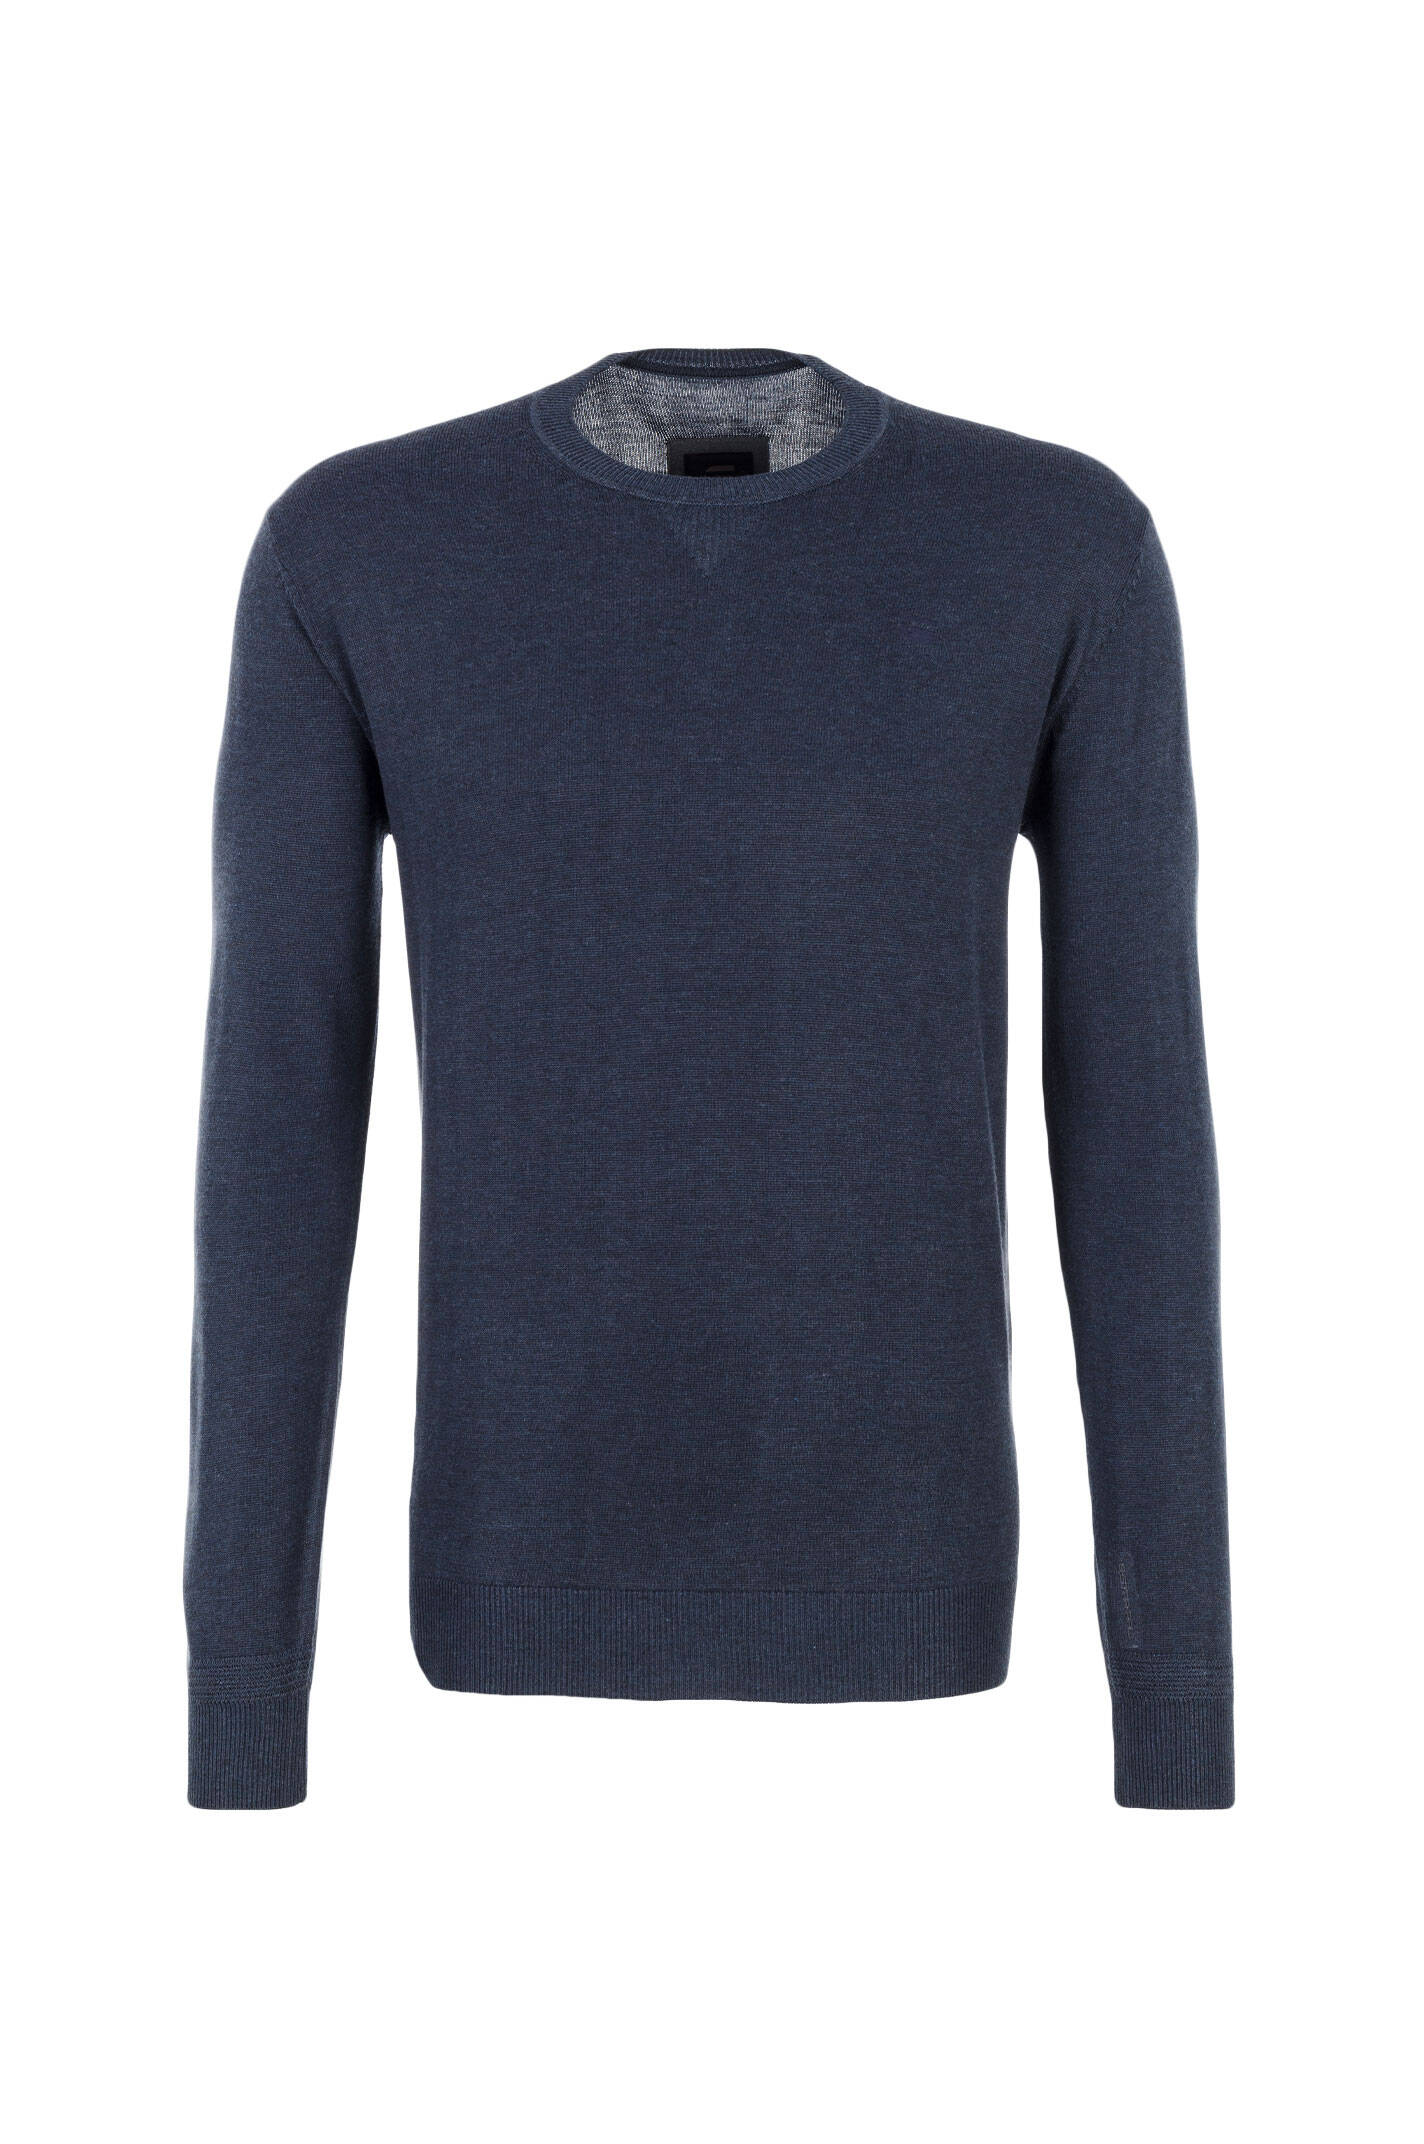 berlow sweater g star raw navy blue knitwear. Black Bedroom Furniture Sets. Home Design Ideas